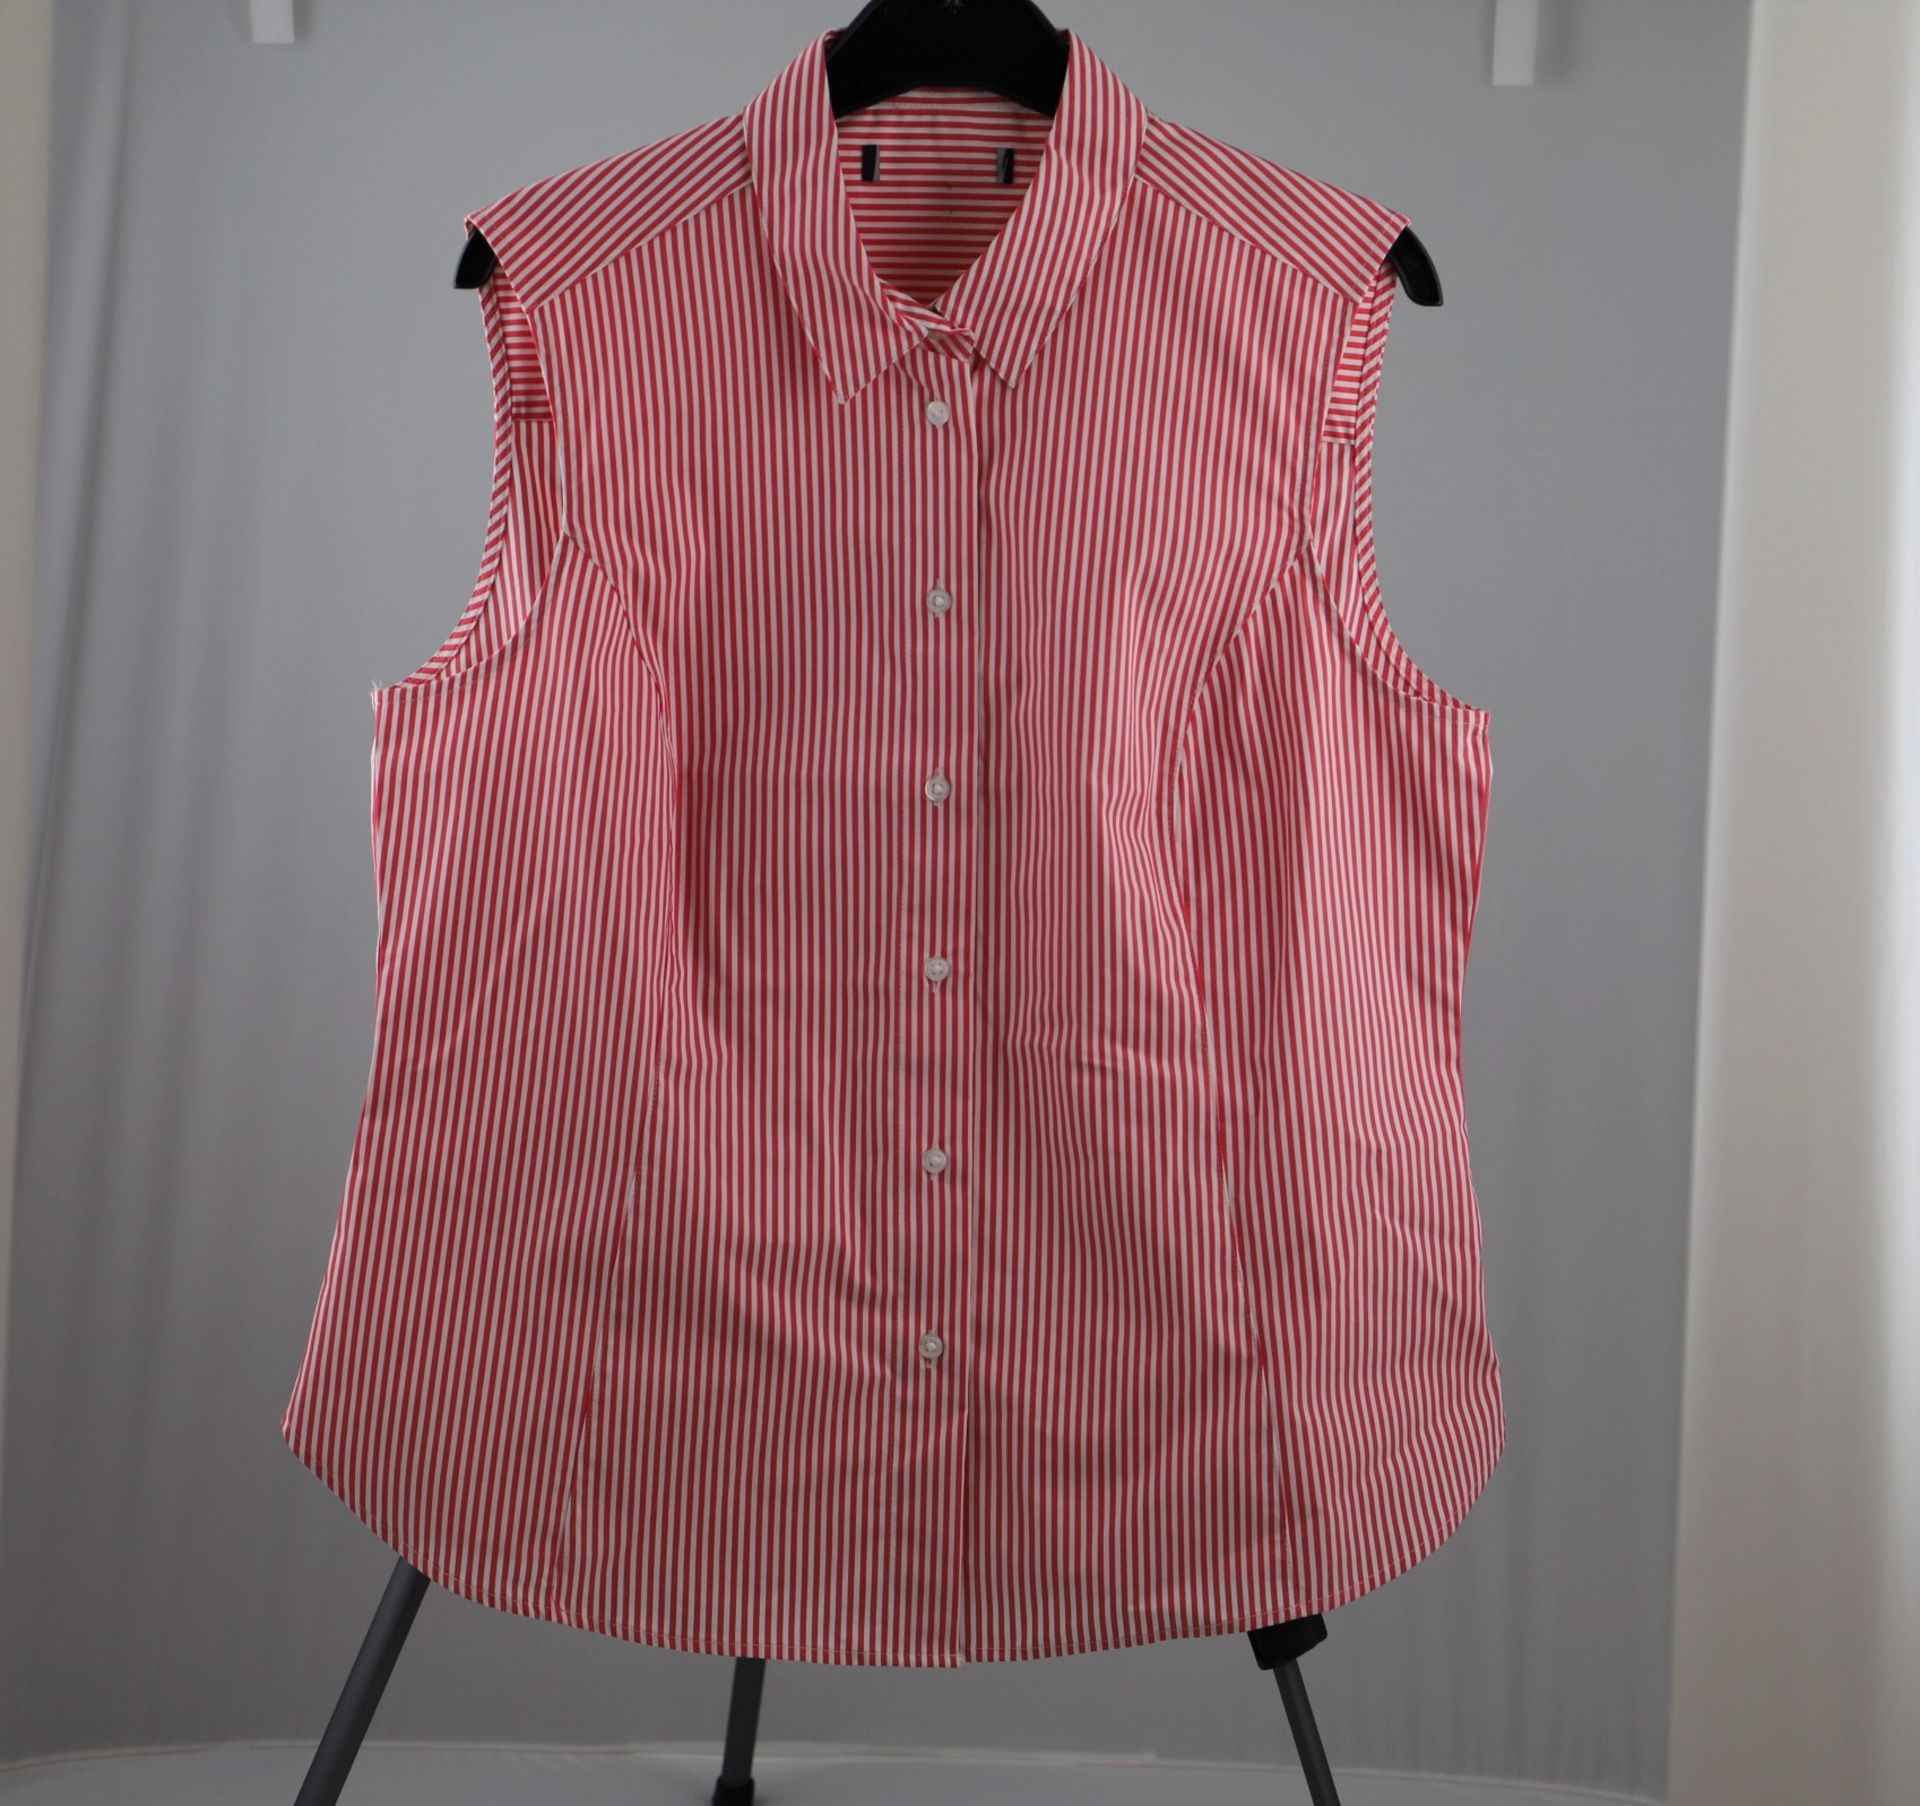 1 x mixed pallet = 473 items of Grade A M&S Womenswear Clothing. Total RRP £5520.00 - Image 6 of 10